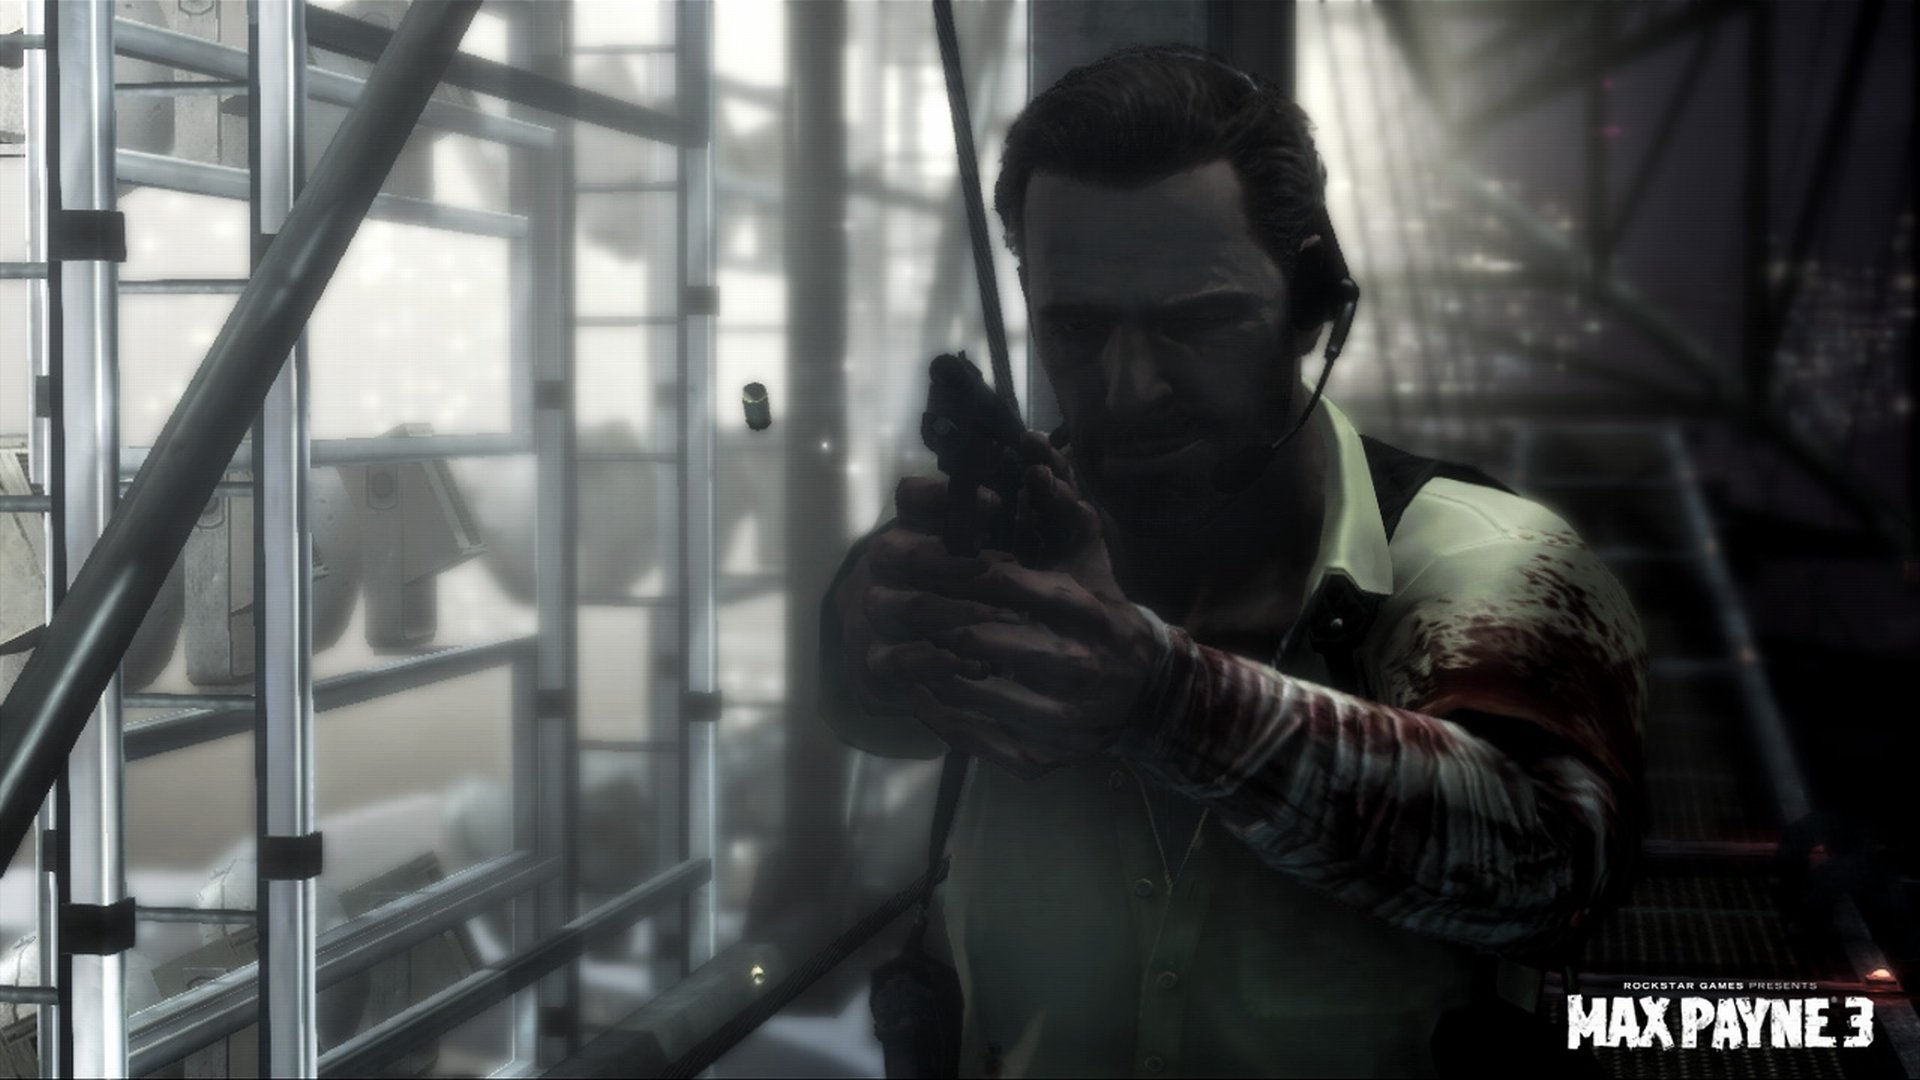 Max Payne Wallpapers 1920x1080 Full Hd 1080p Desktop Backgrounds